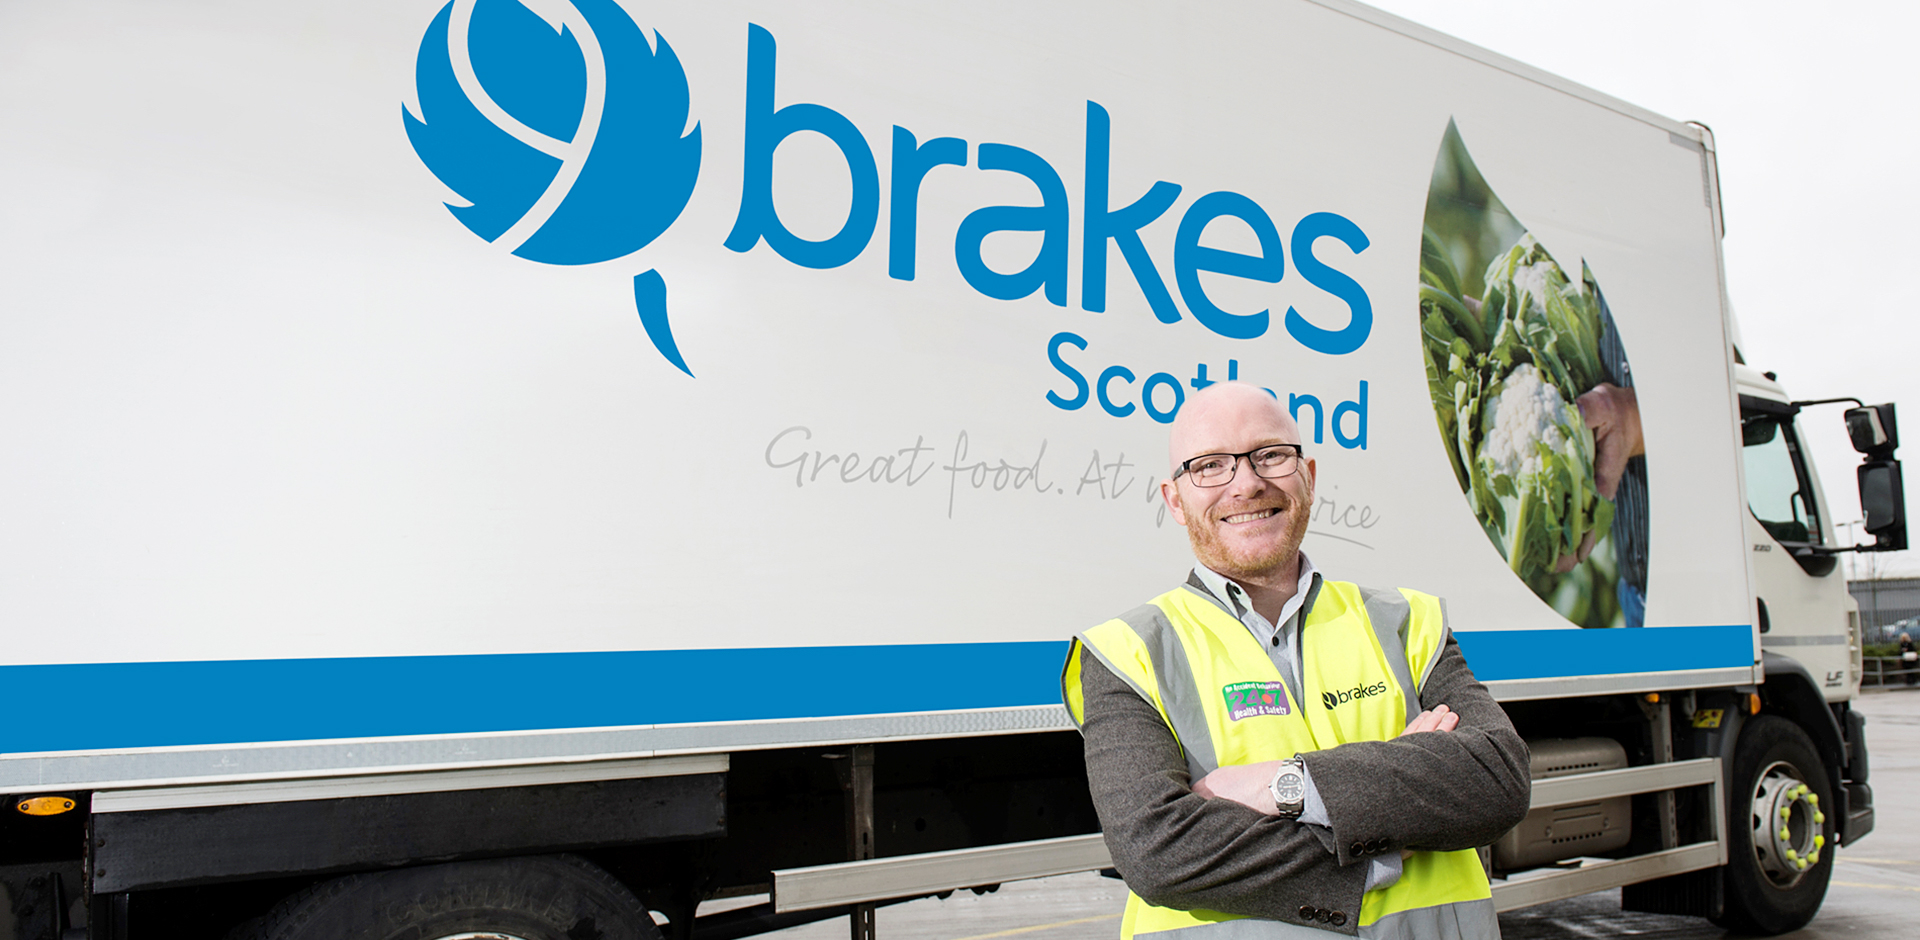 Gary Maclean partners with Brakes Scotland in boost to Scottish offering